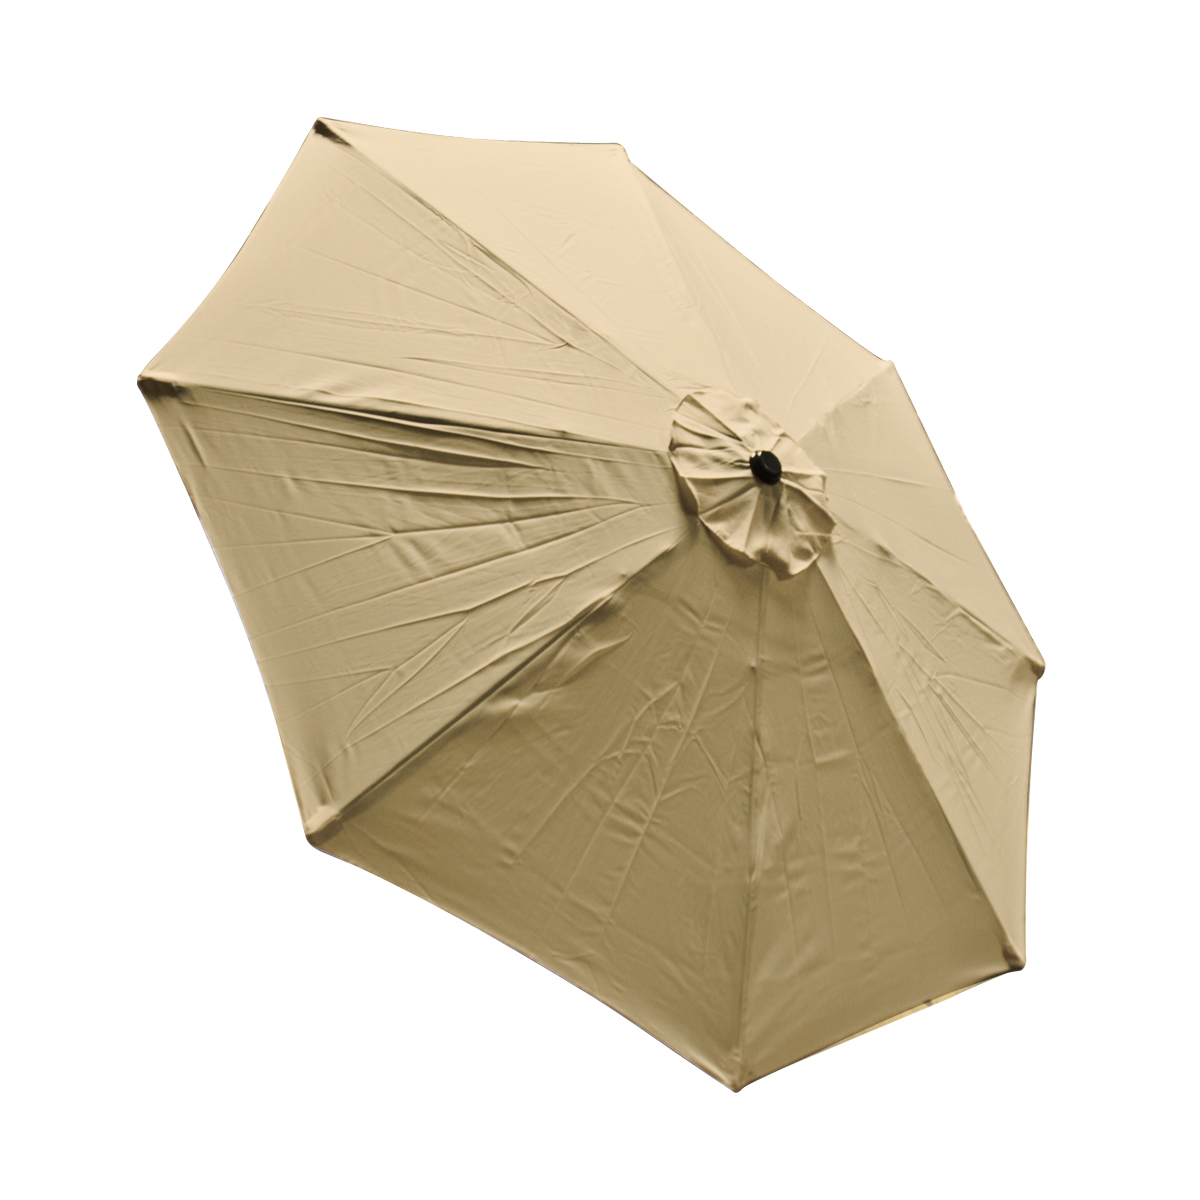 Patio Umbrella Replacement Canopy: 9 FT 8 Ribs Replacement Umbrella Cover Canopy Tan Top